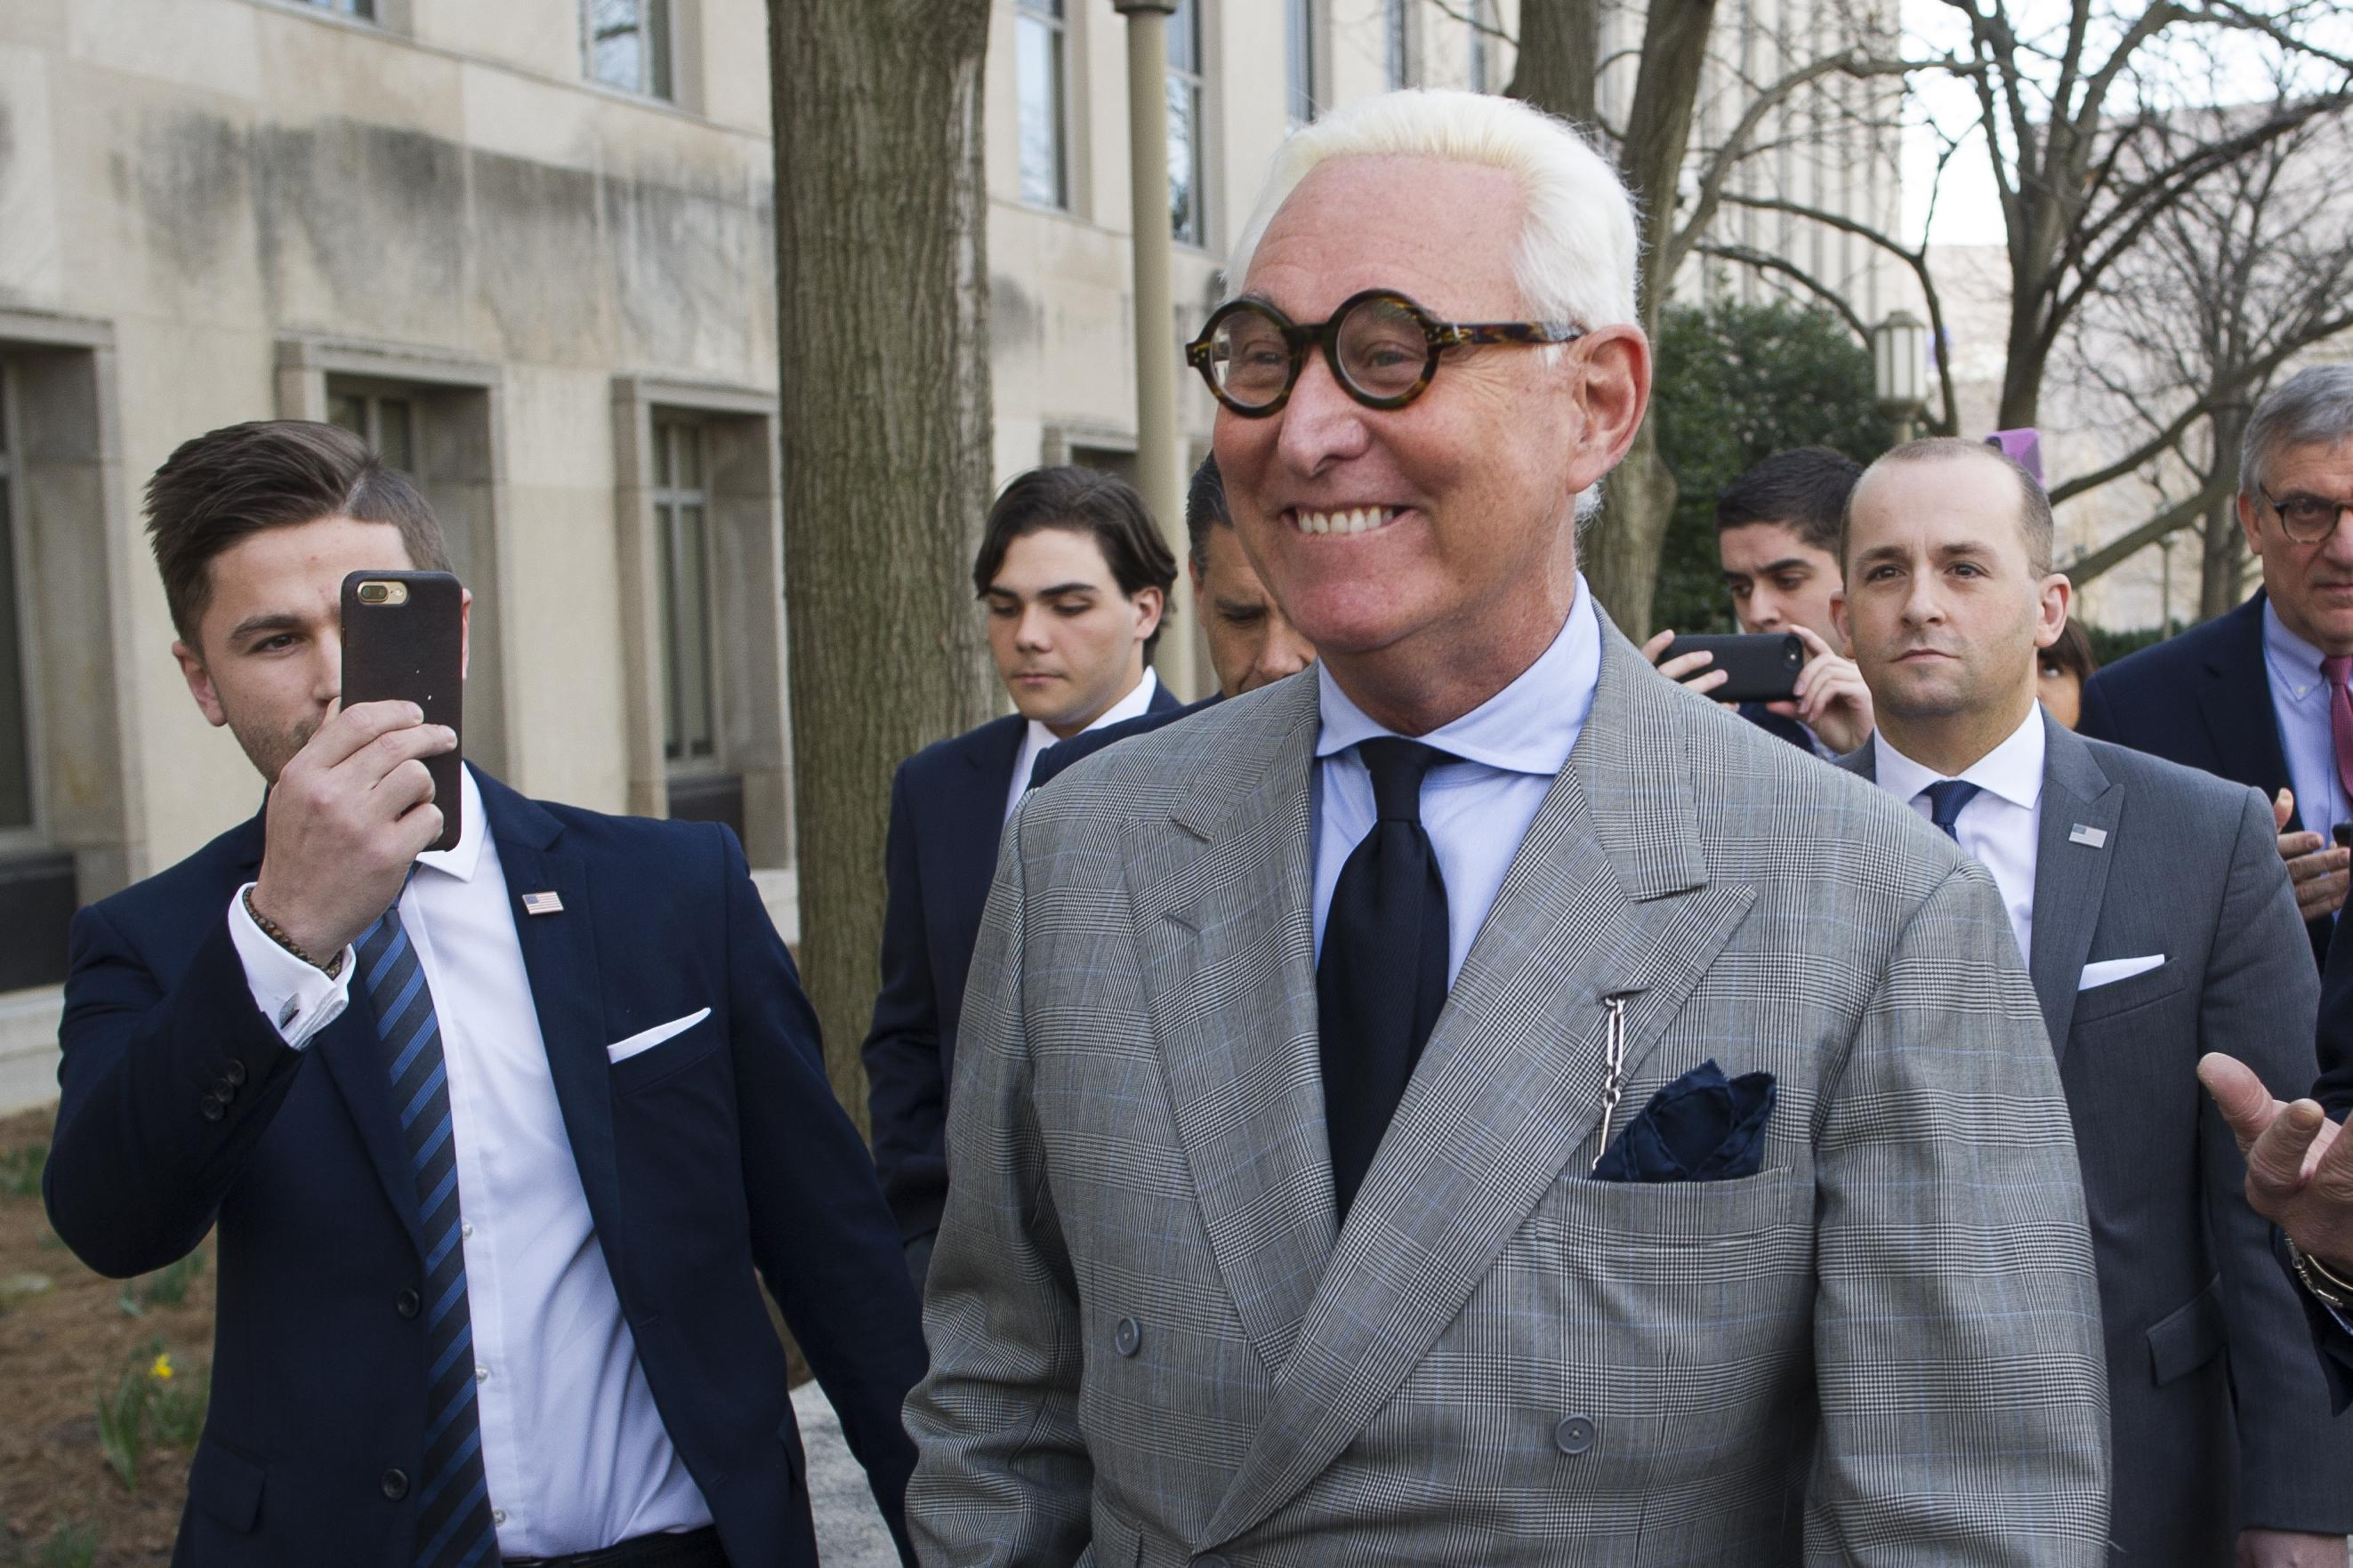 Stone attorneys ask court for unredacted Mueller report to support claim of selective prosecution